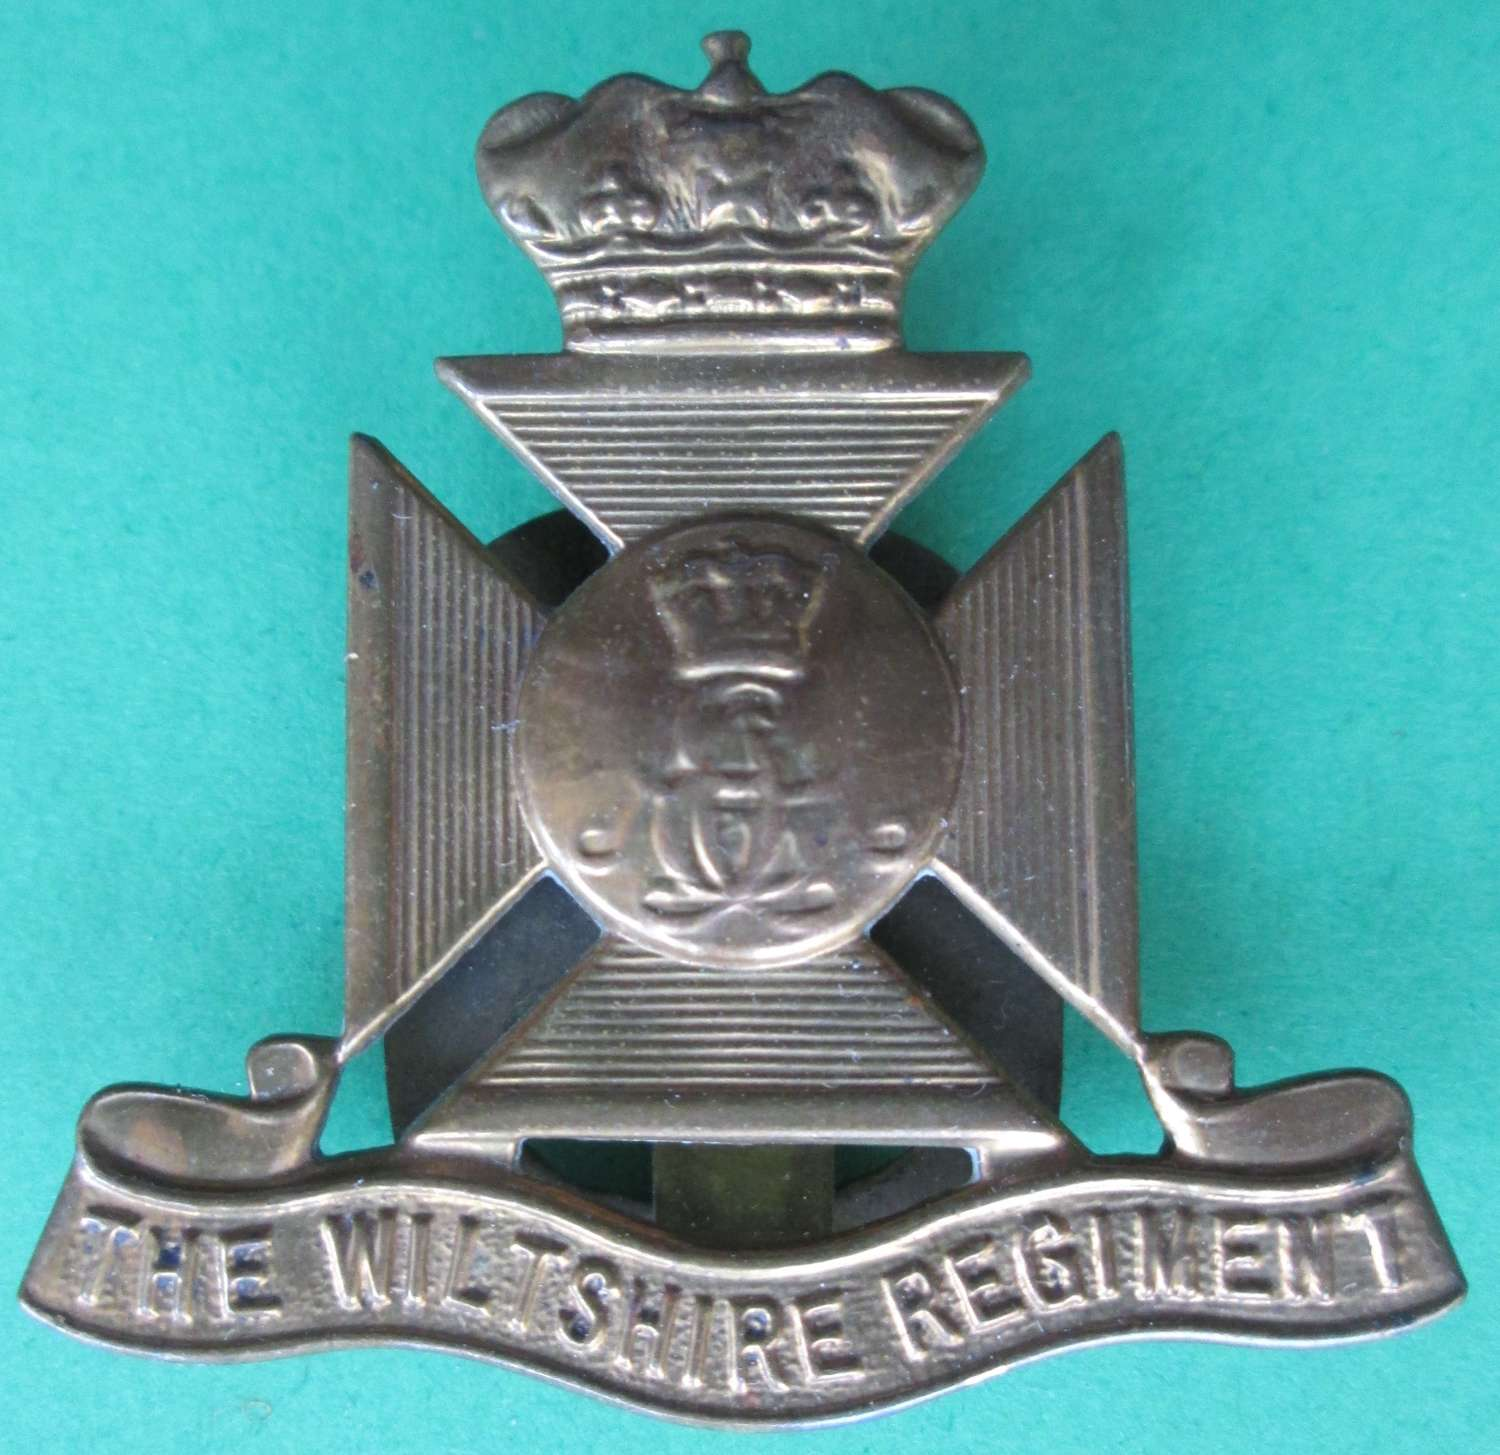 A GOOD USED WWII WILTSHIRE REGIMENT CAP BADGE